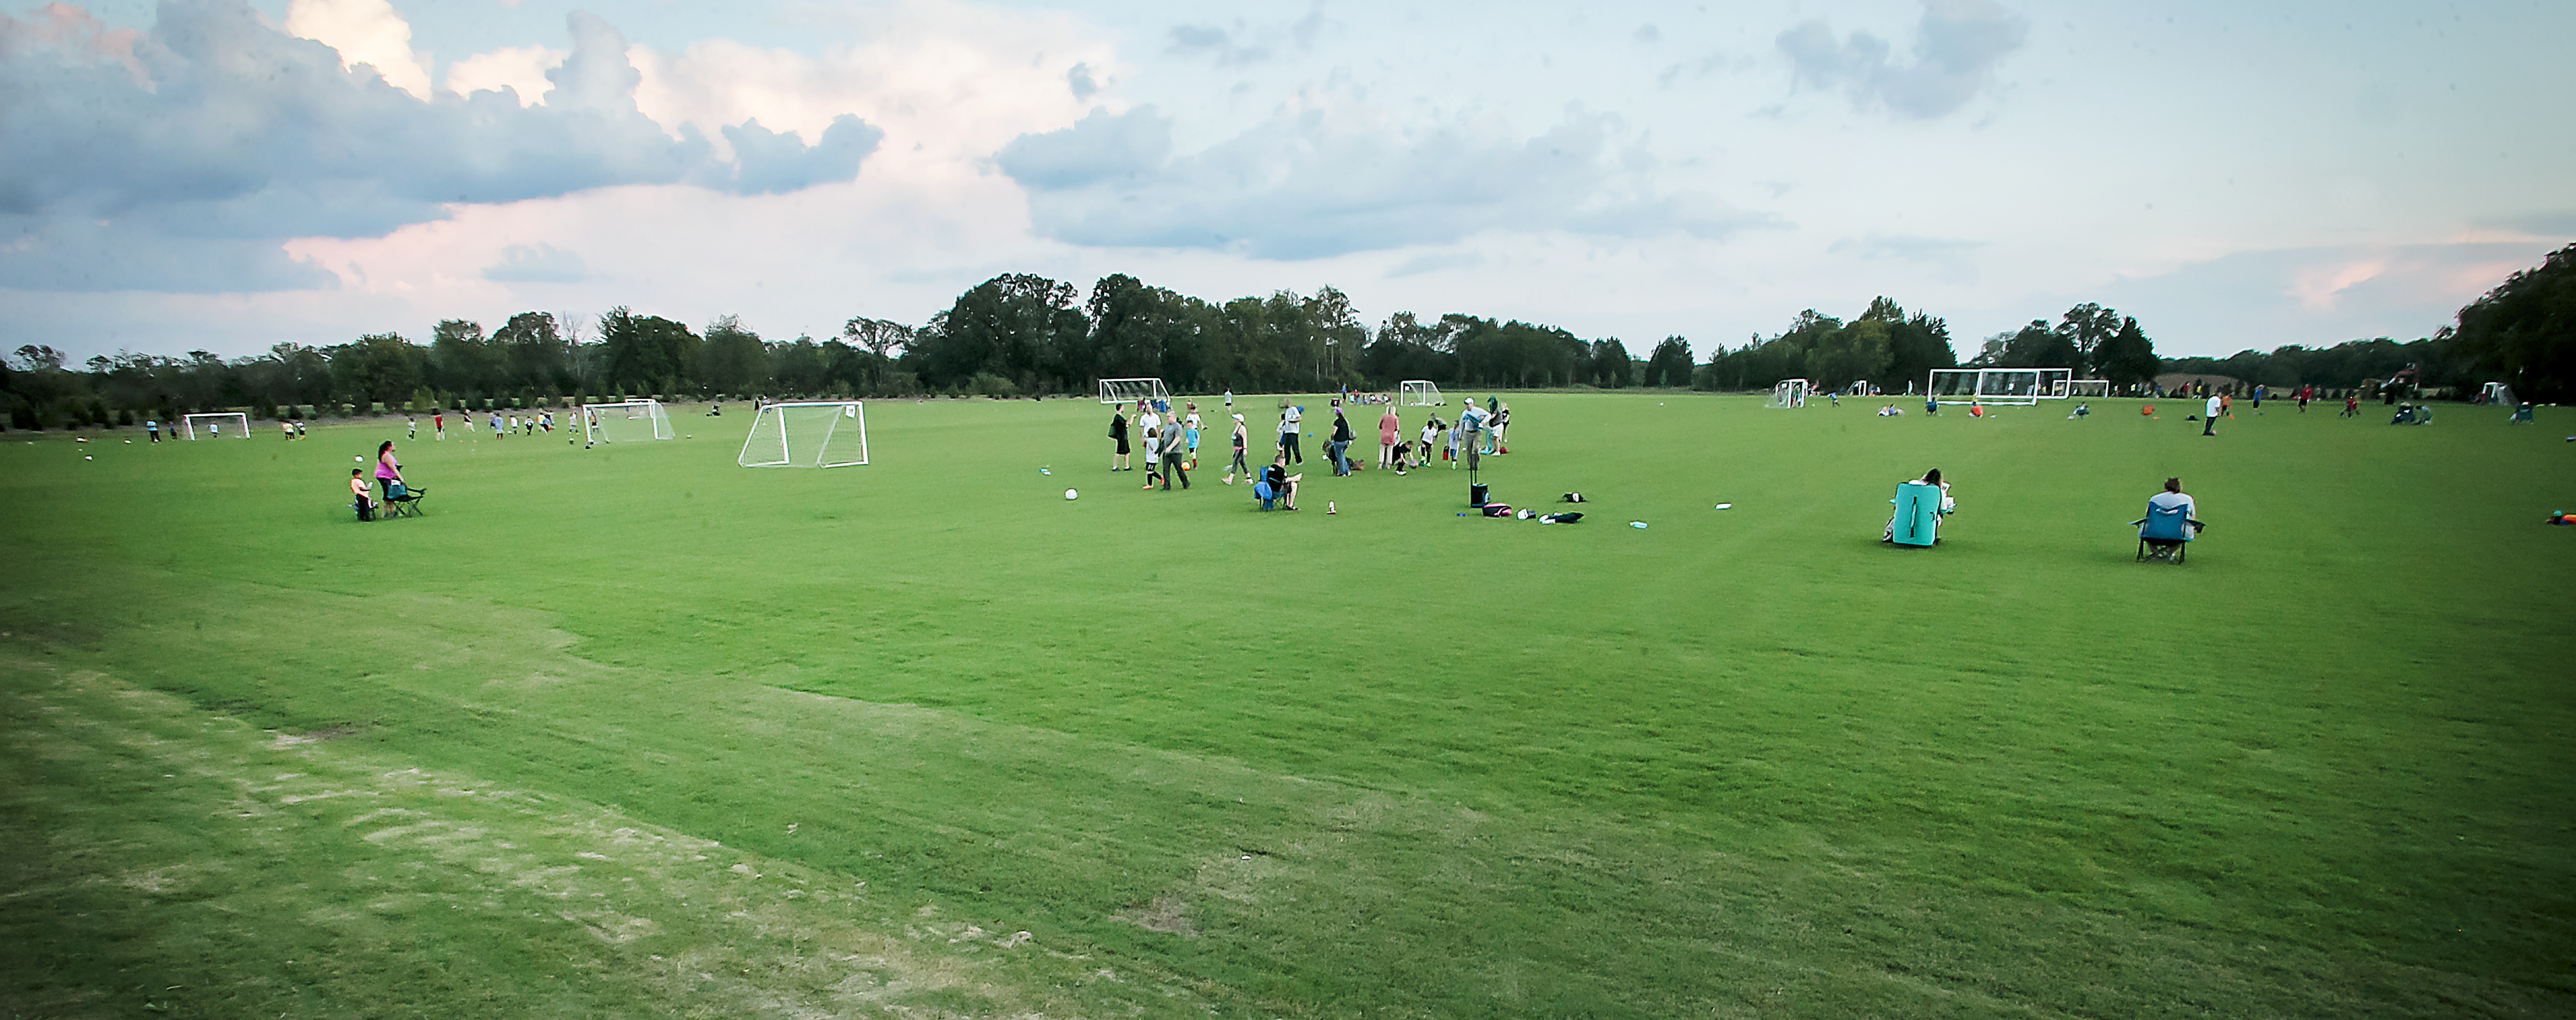 Photo of New Richard Siegel Soccer Practice Fields Open for Practice Play